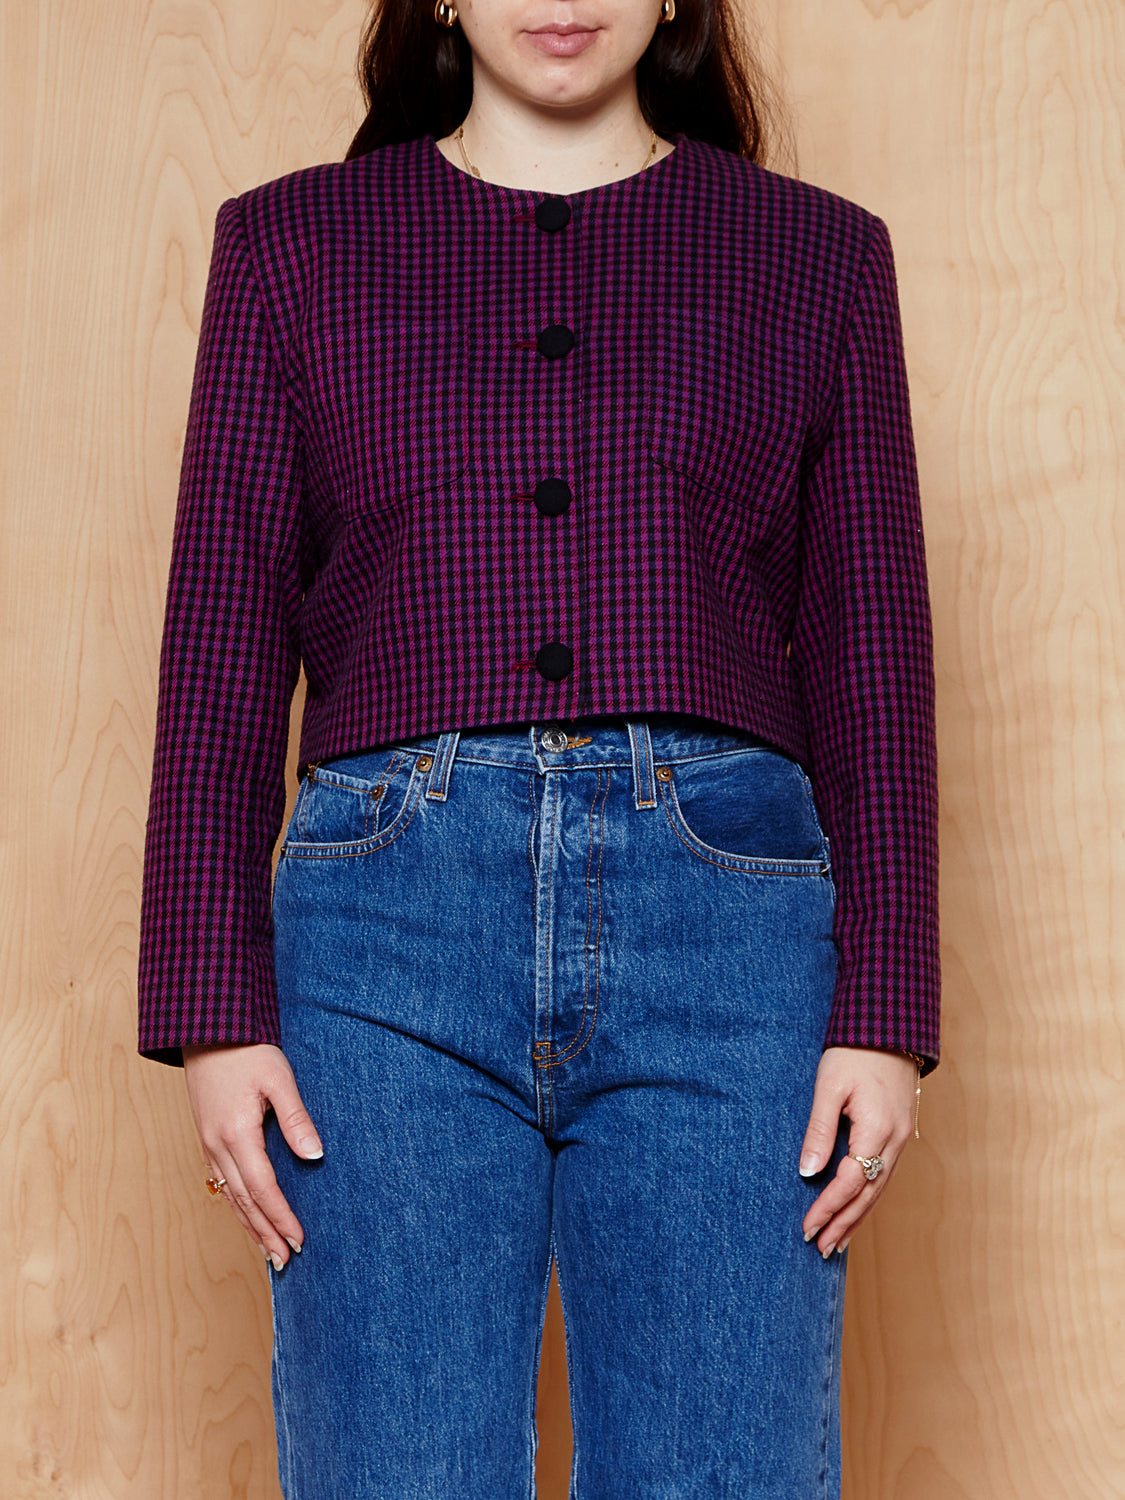 Vintage Ann Taylor Purple Houndstooth Jacket